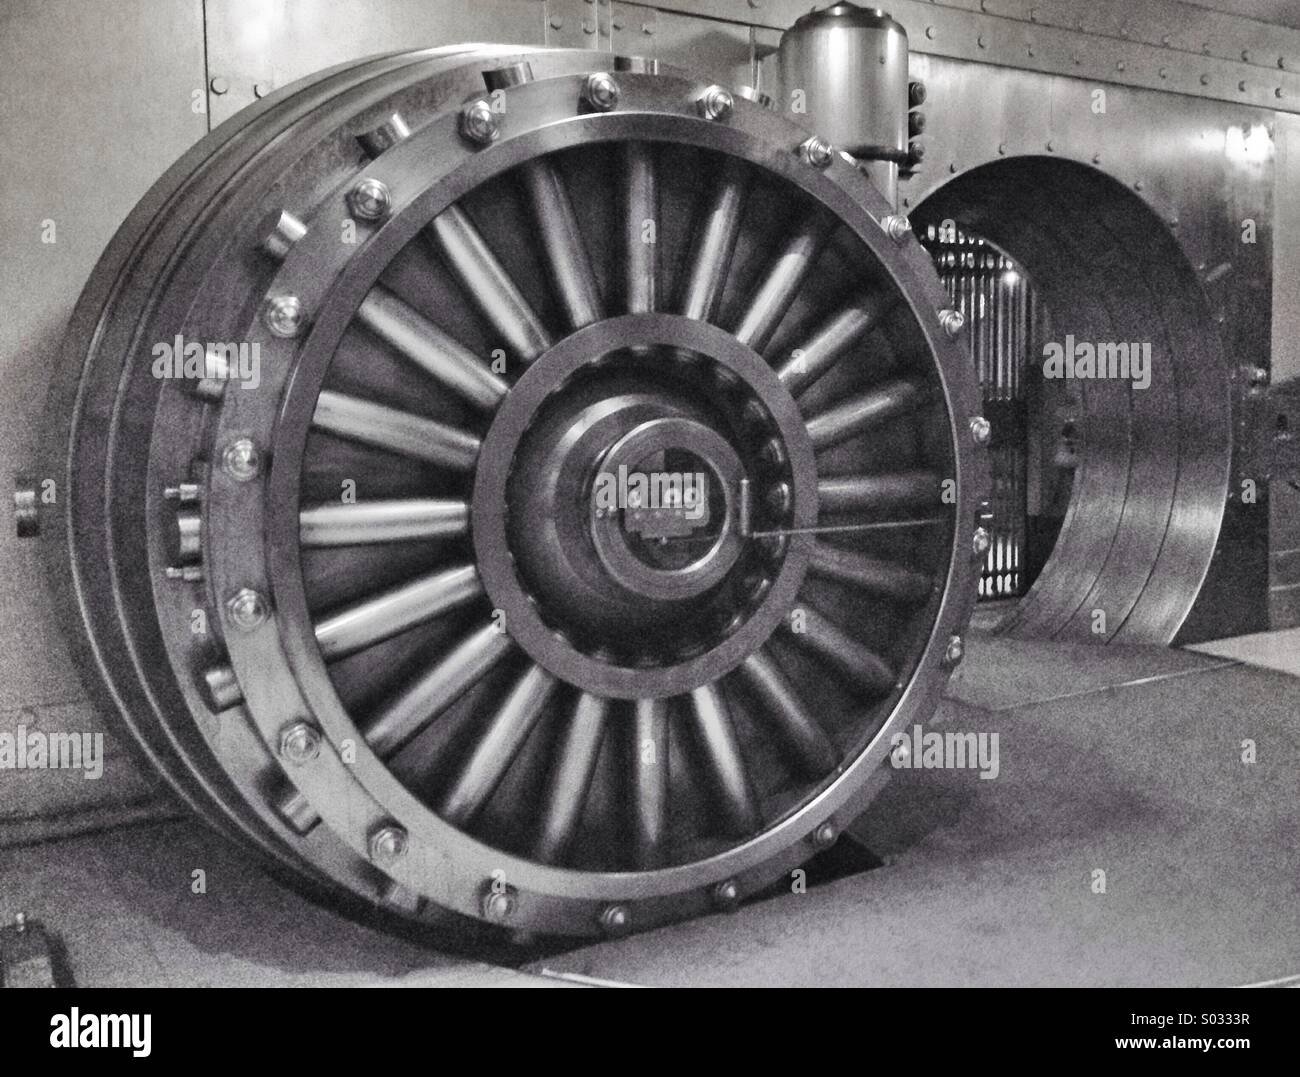 Bank Vault in Toronto, Canada - Stock Image